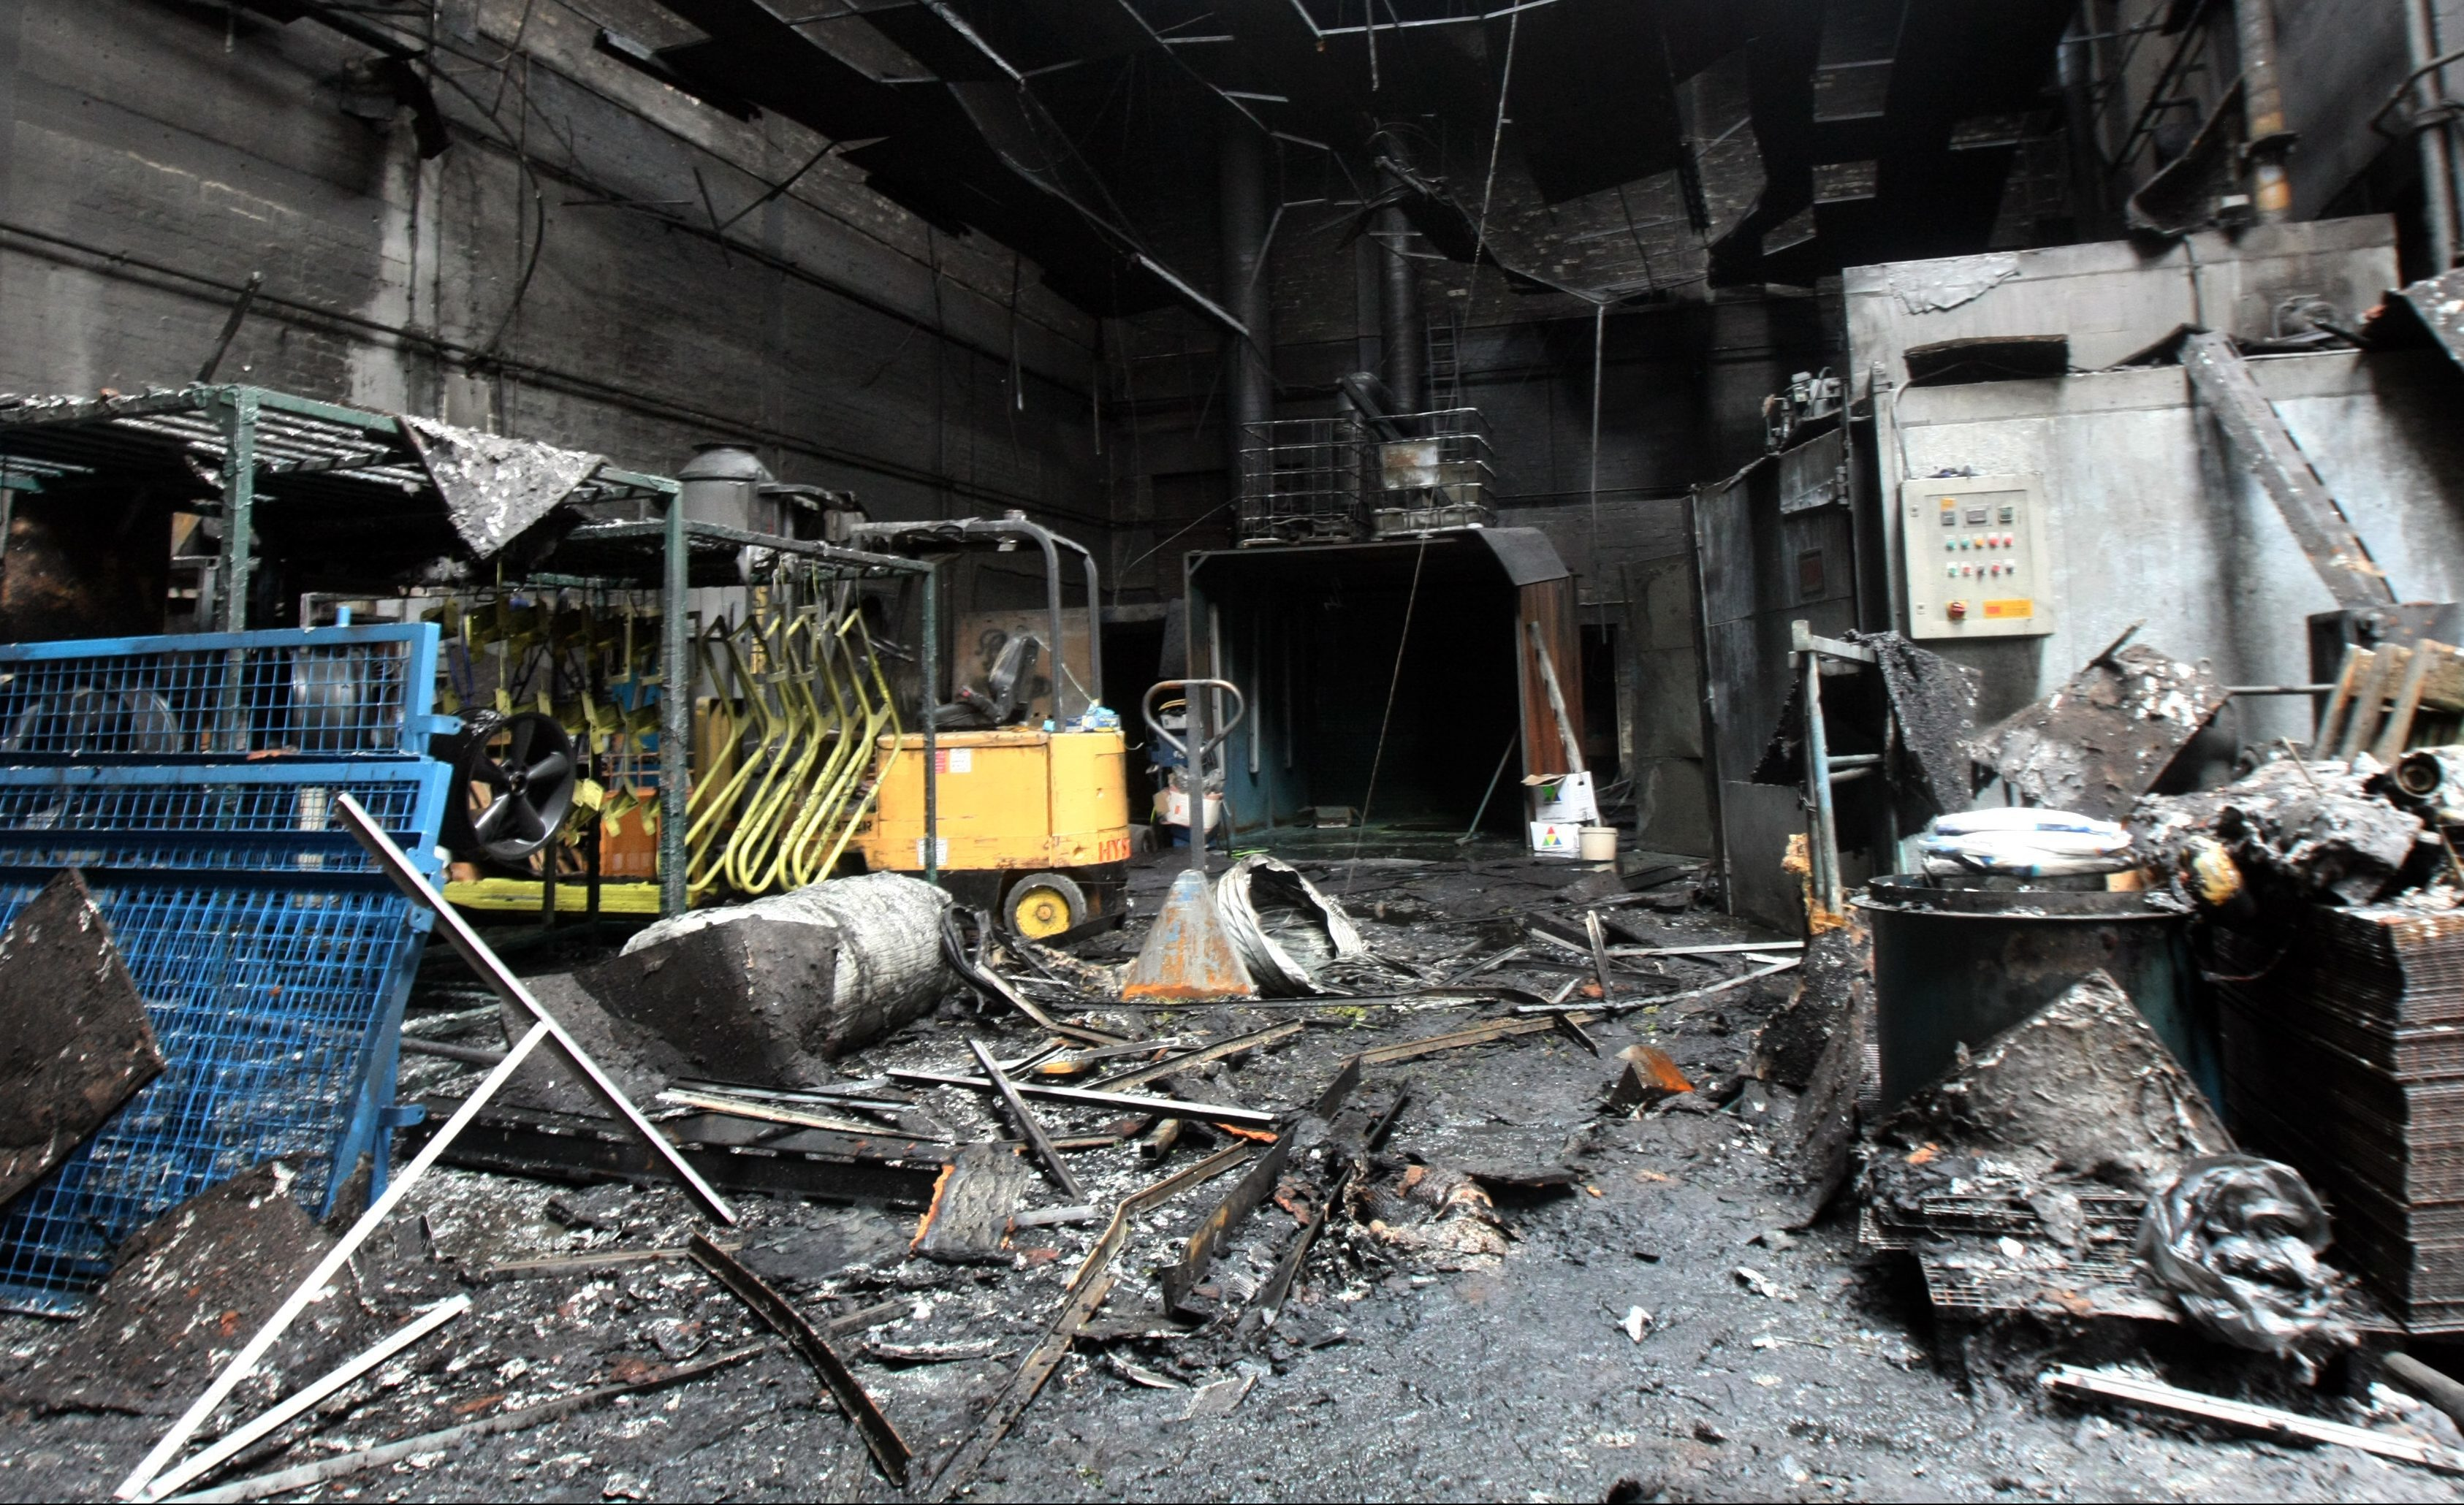 The fire-damaged unit.